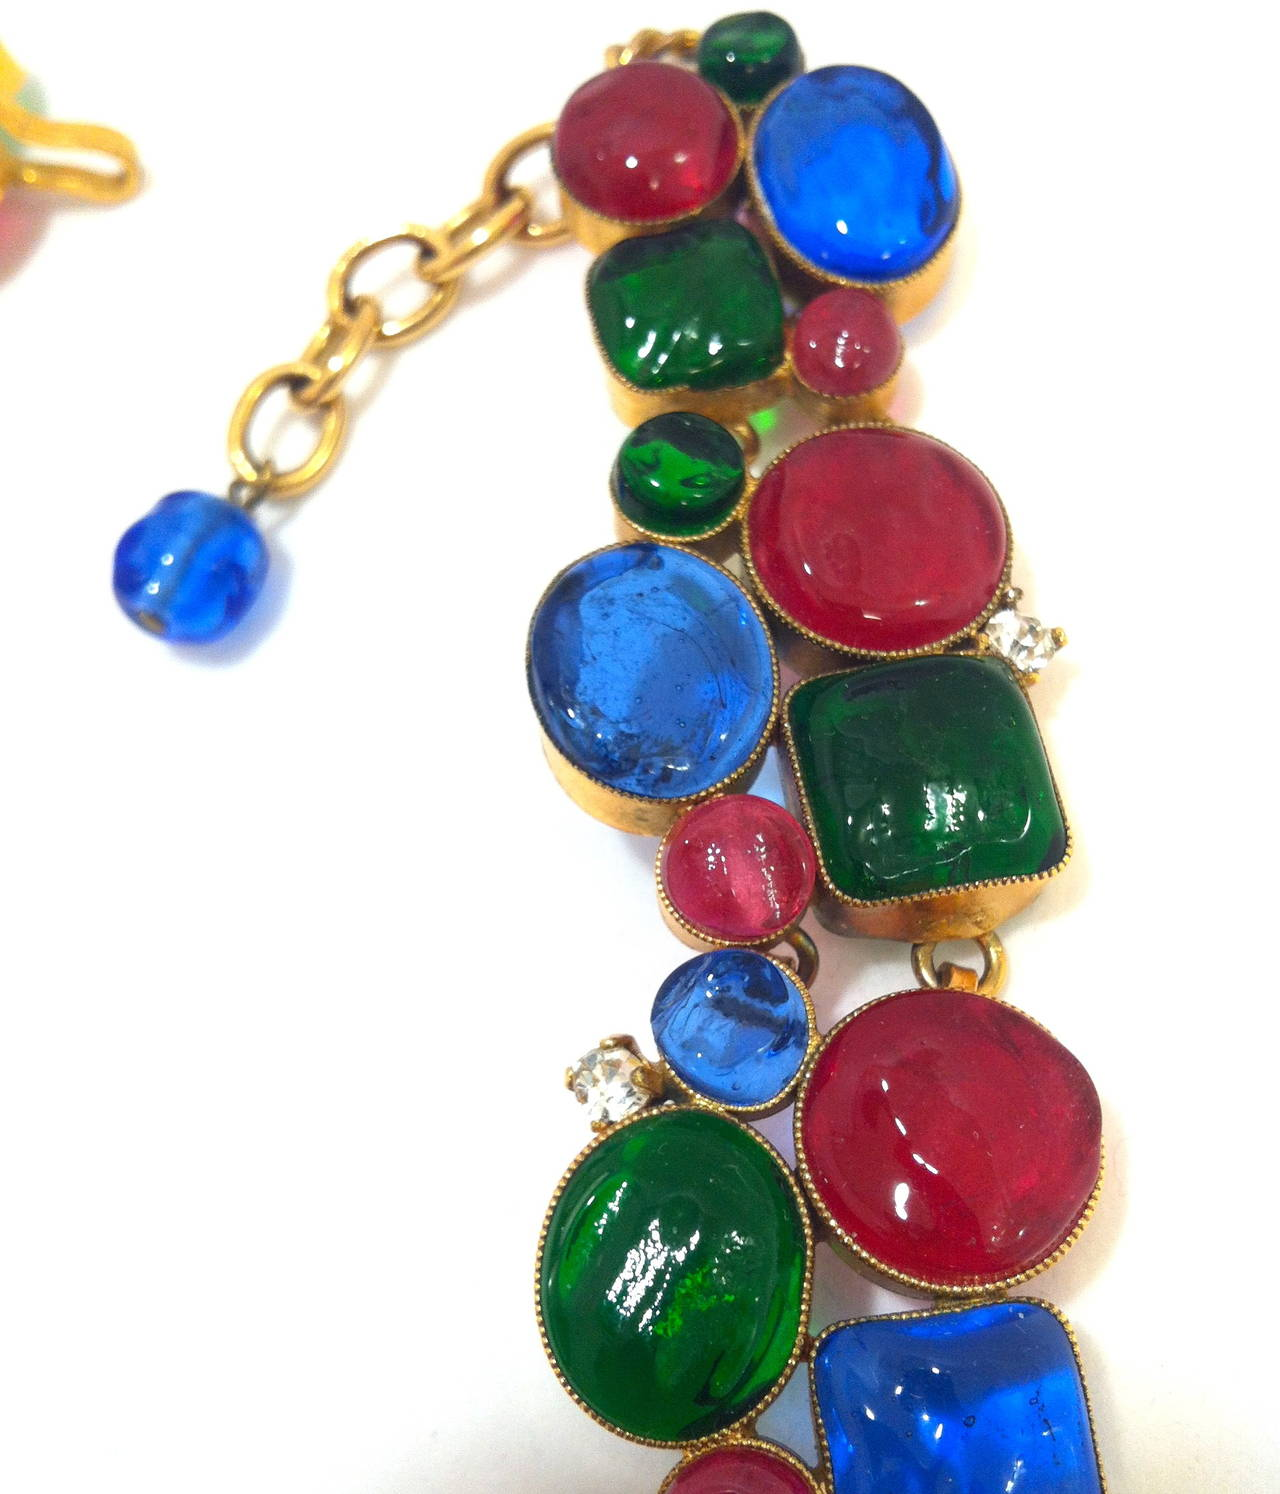 Rare 1970's Mademoiselle Chanel  Byzantine Necklace by Gripoix 6